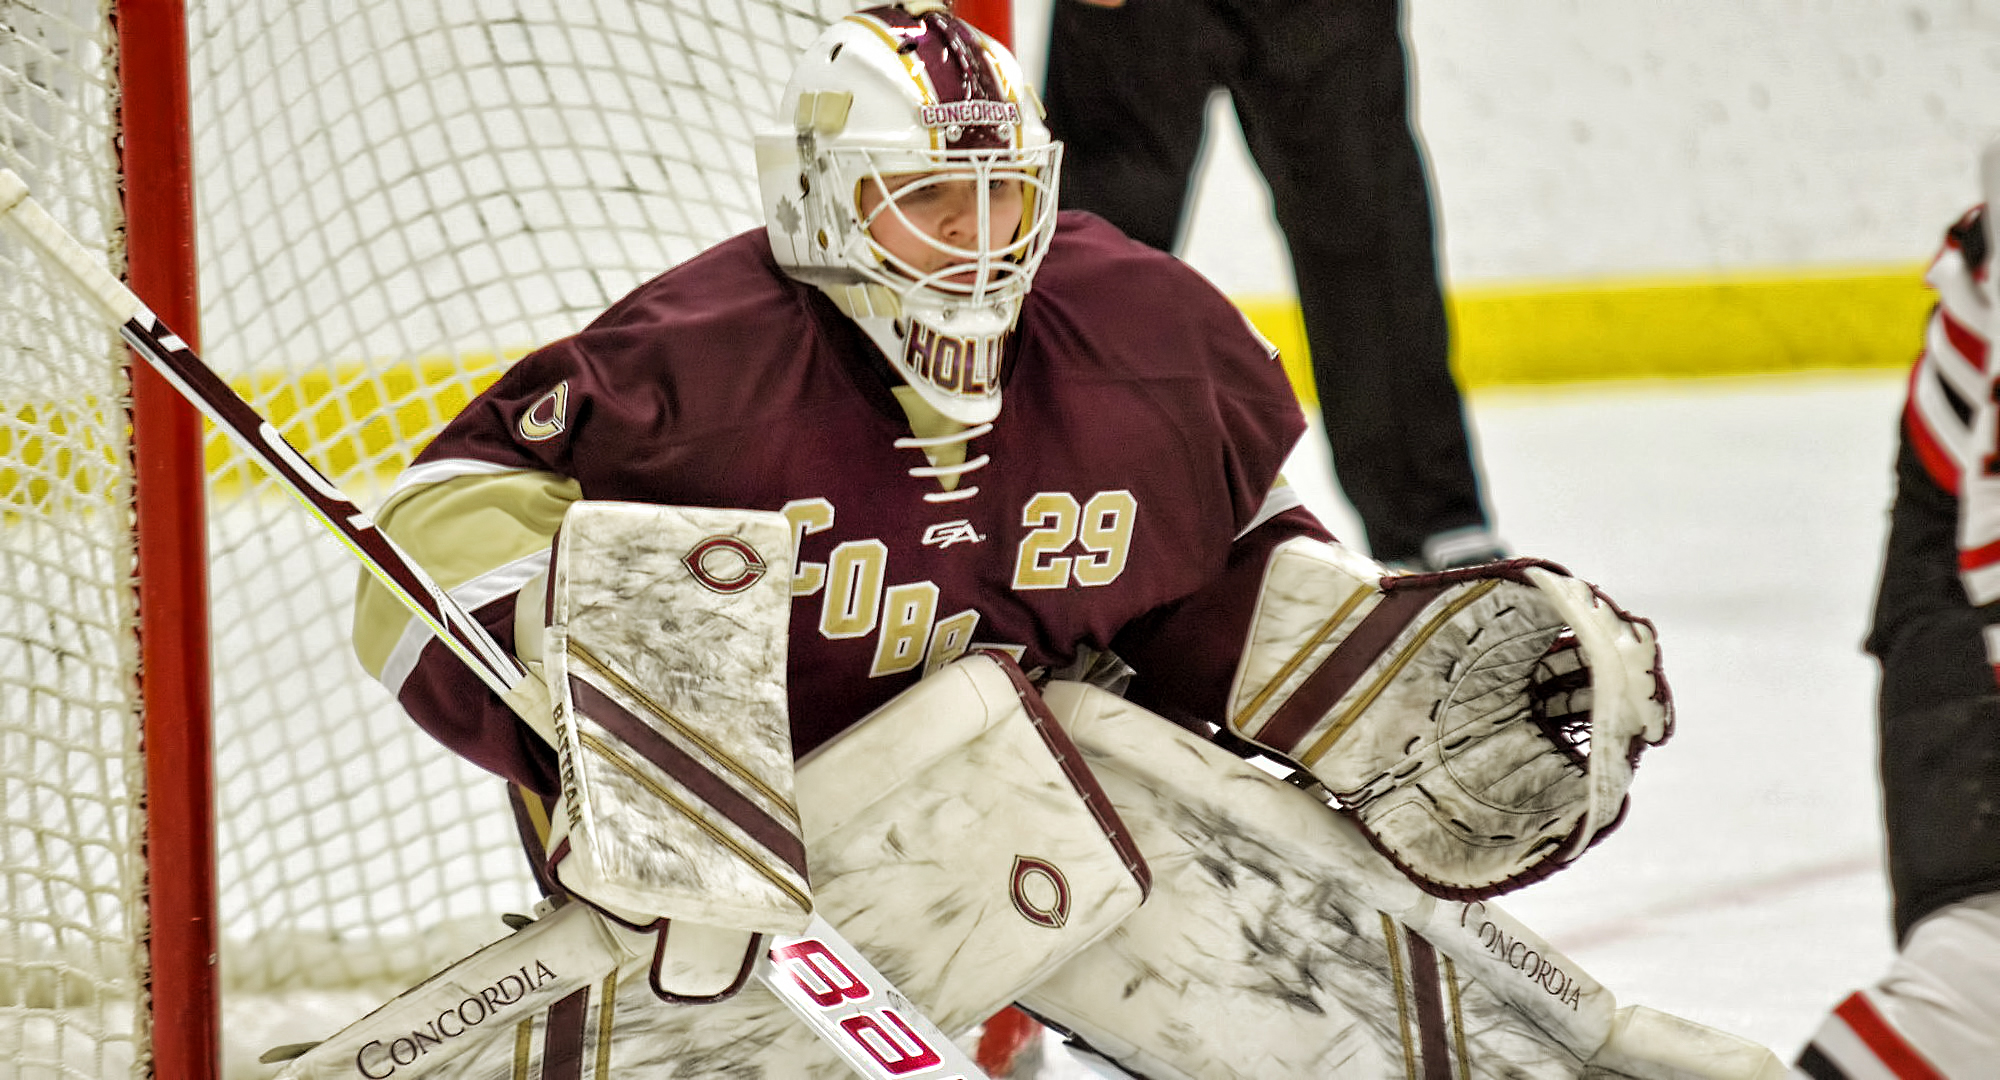 Goalie Gabe Holum gets ready to make a stop during the Cobbers' 3-2 win at Wis.-River Falls. Holum made 19 saves to earn his first college win. (Pic courtesy of BJ Pickard)